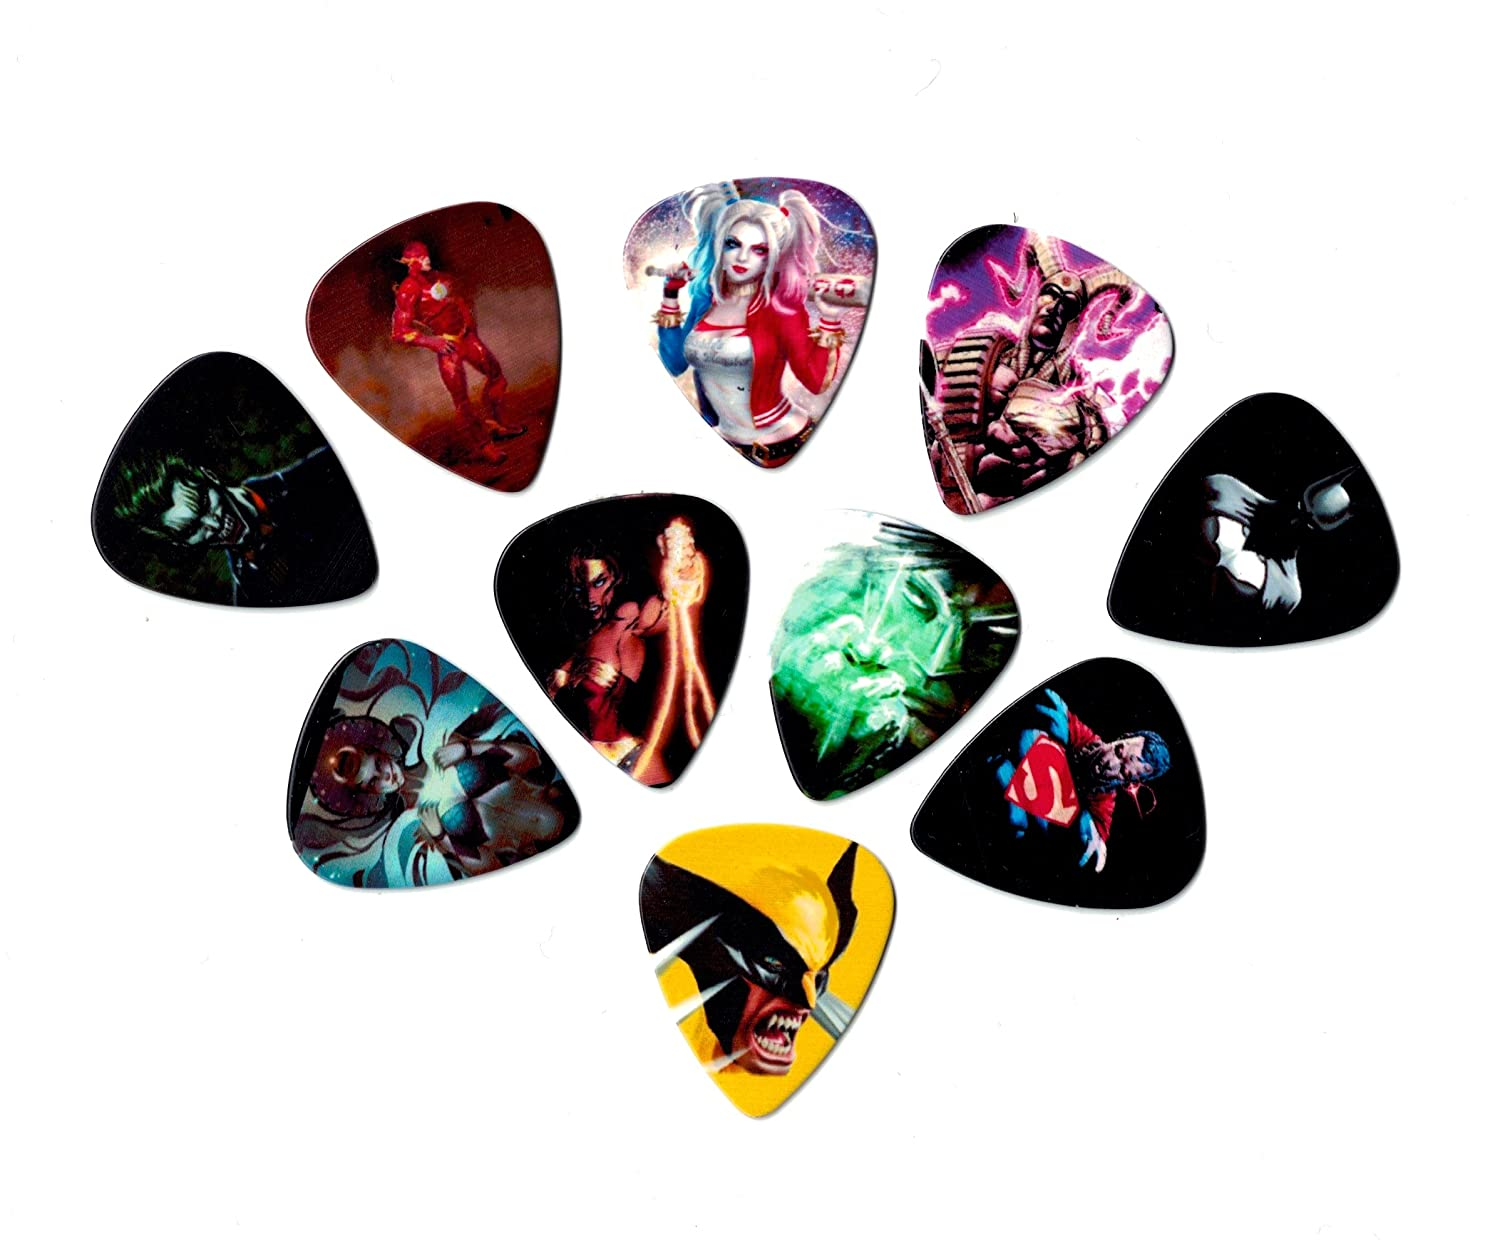 Amazon.com: Searay DC Comics guitar picks (10 medium picks in a ...